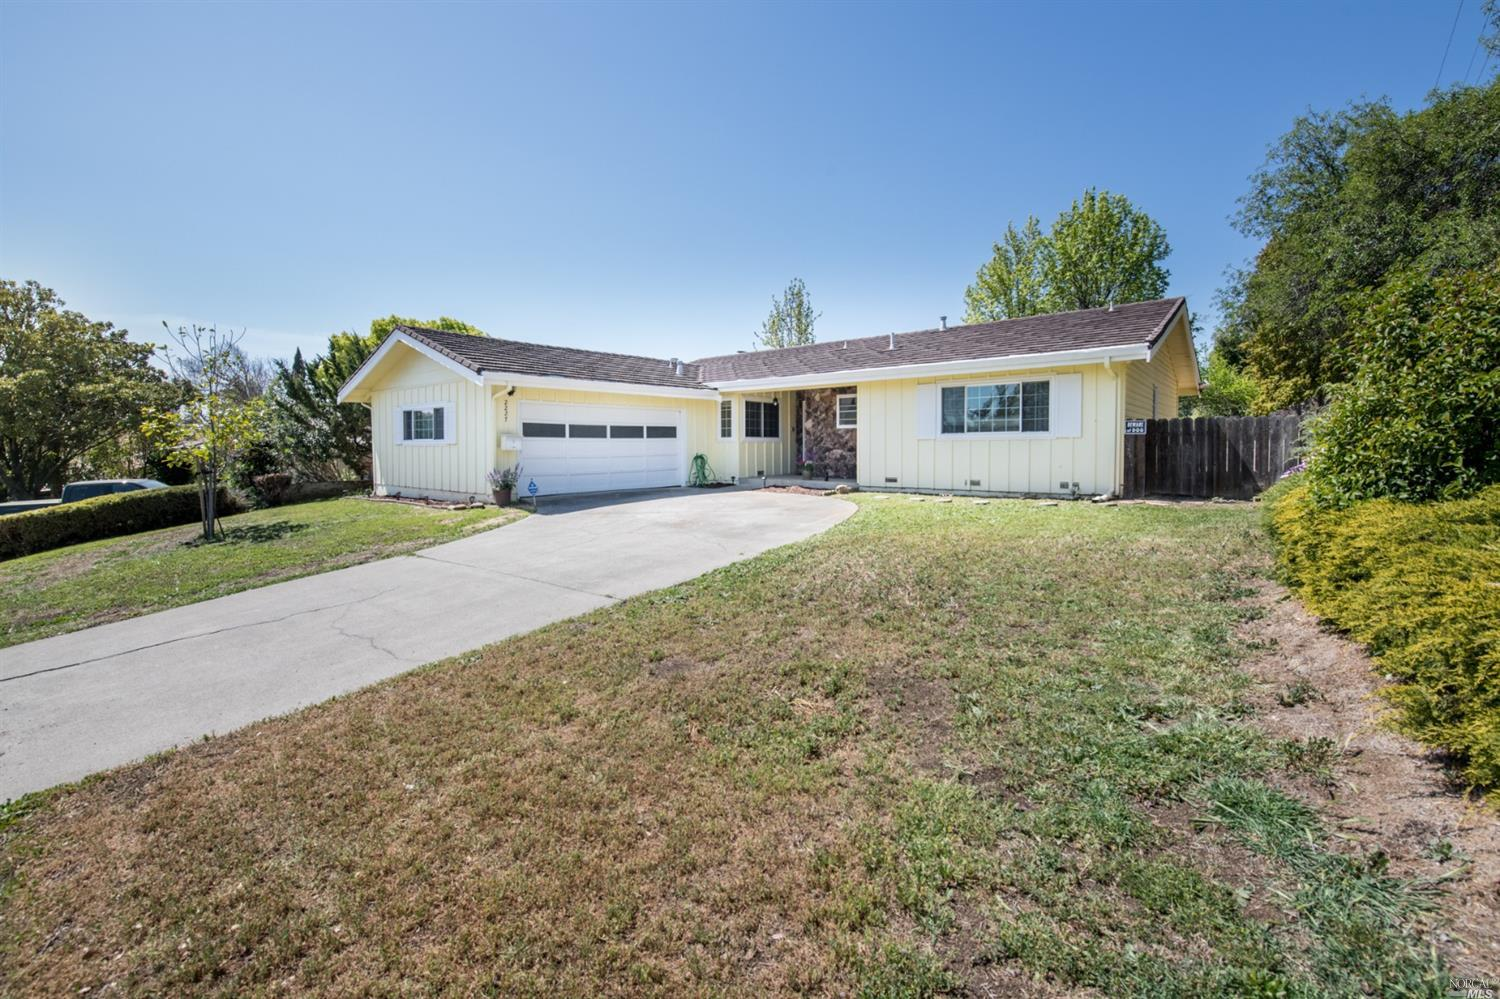 Hidden Gem! Must see this Move In Ready peaceful 3 Bedroom 2 Bath home with a bright and airy sunroo